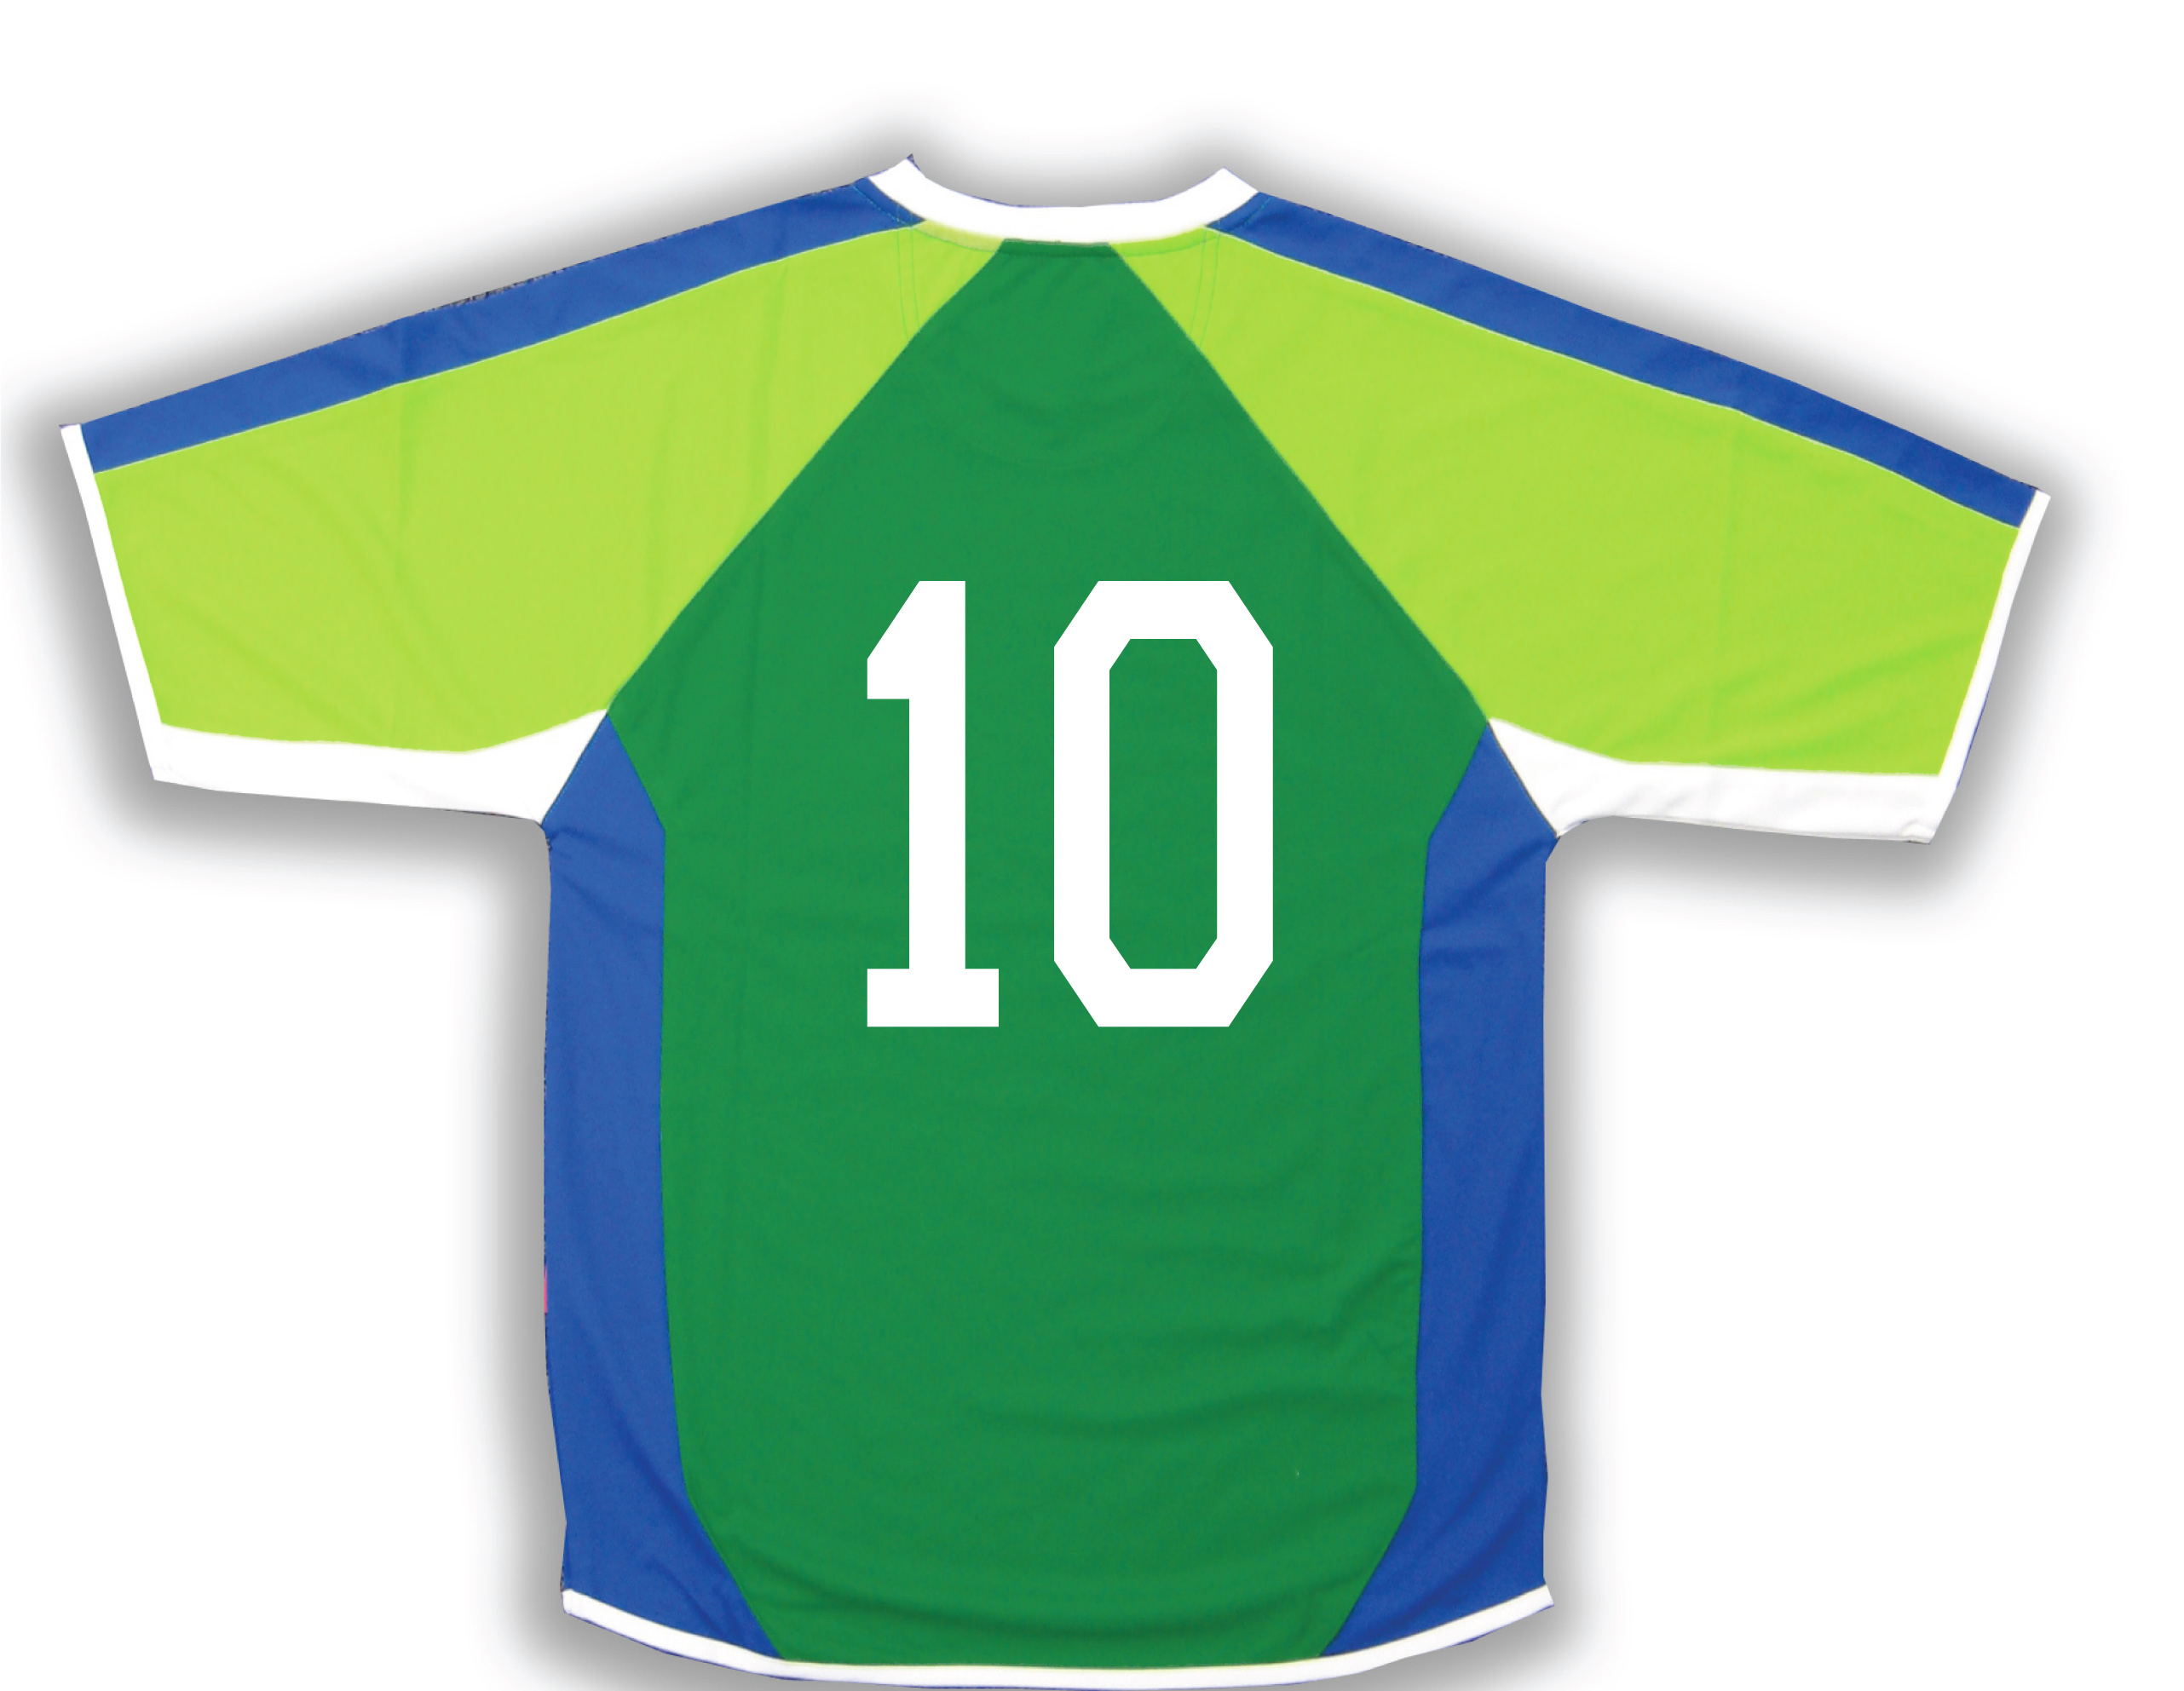 Seattle soccer jersey with number on back by Code Four Athletics